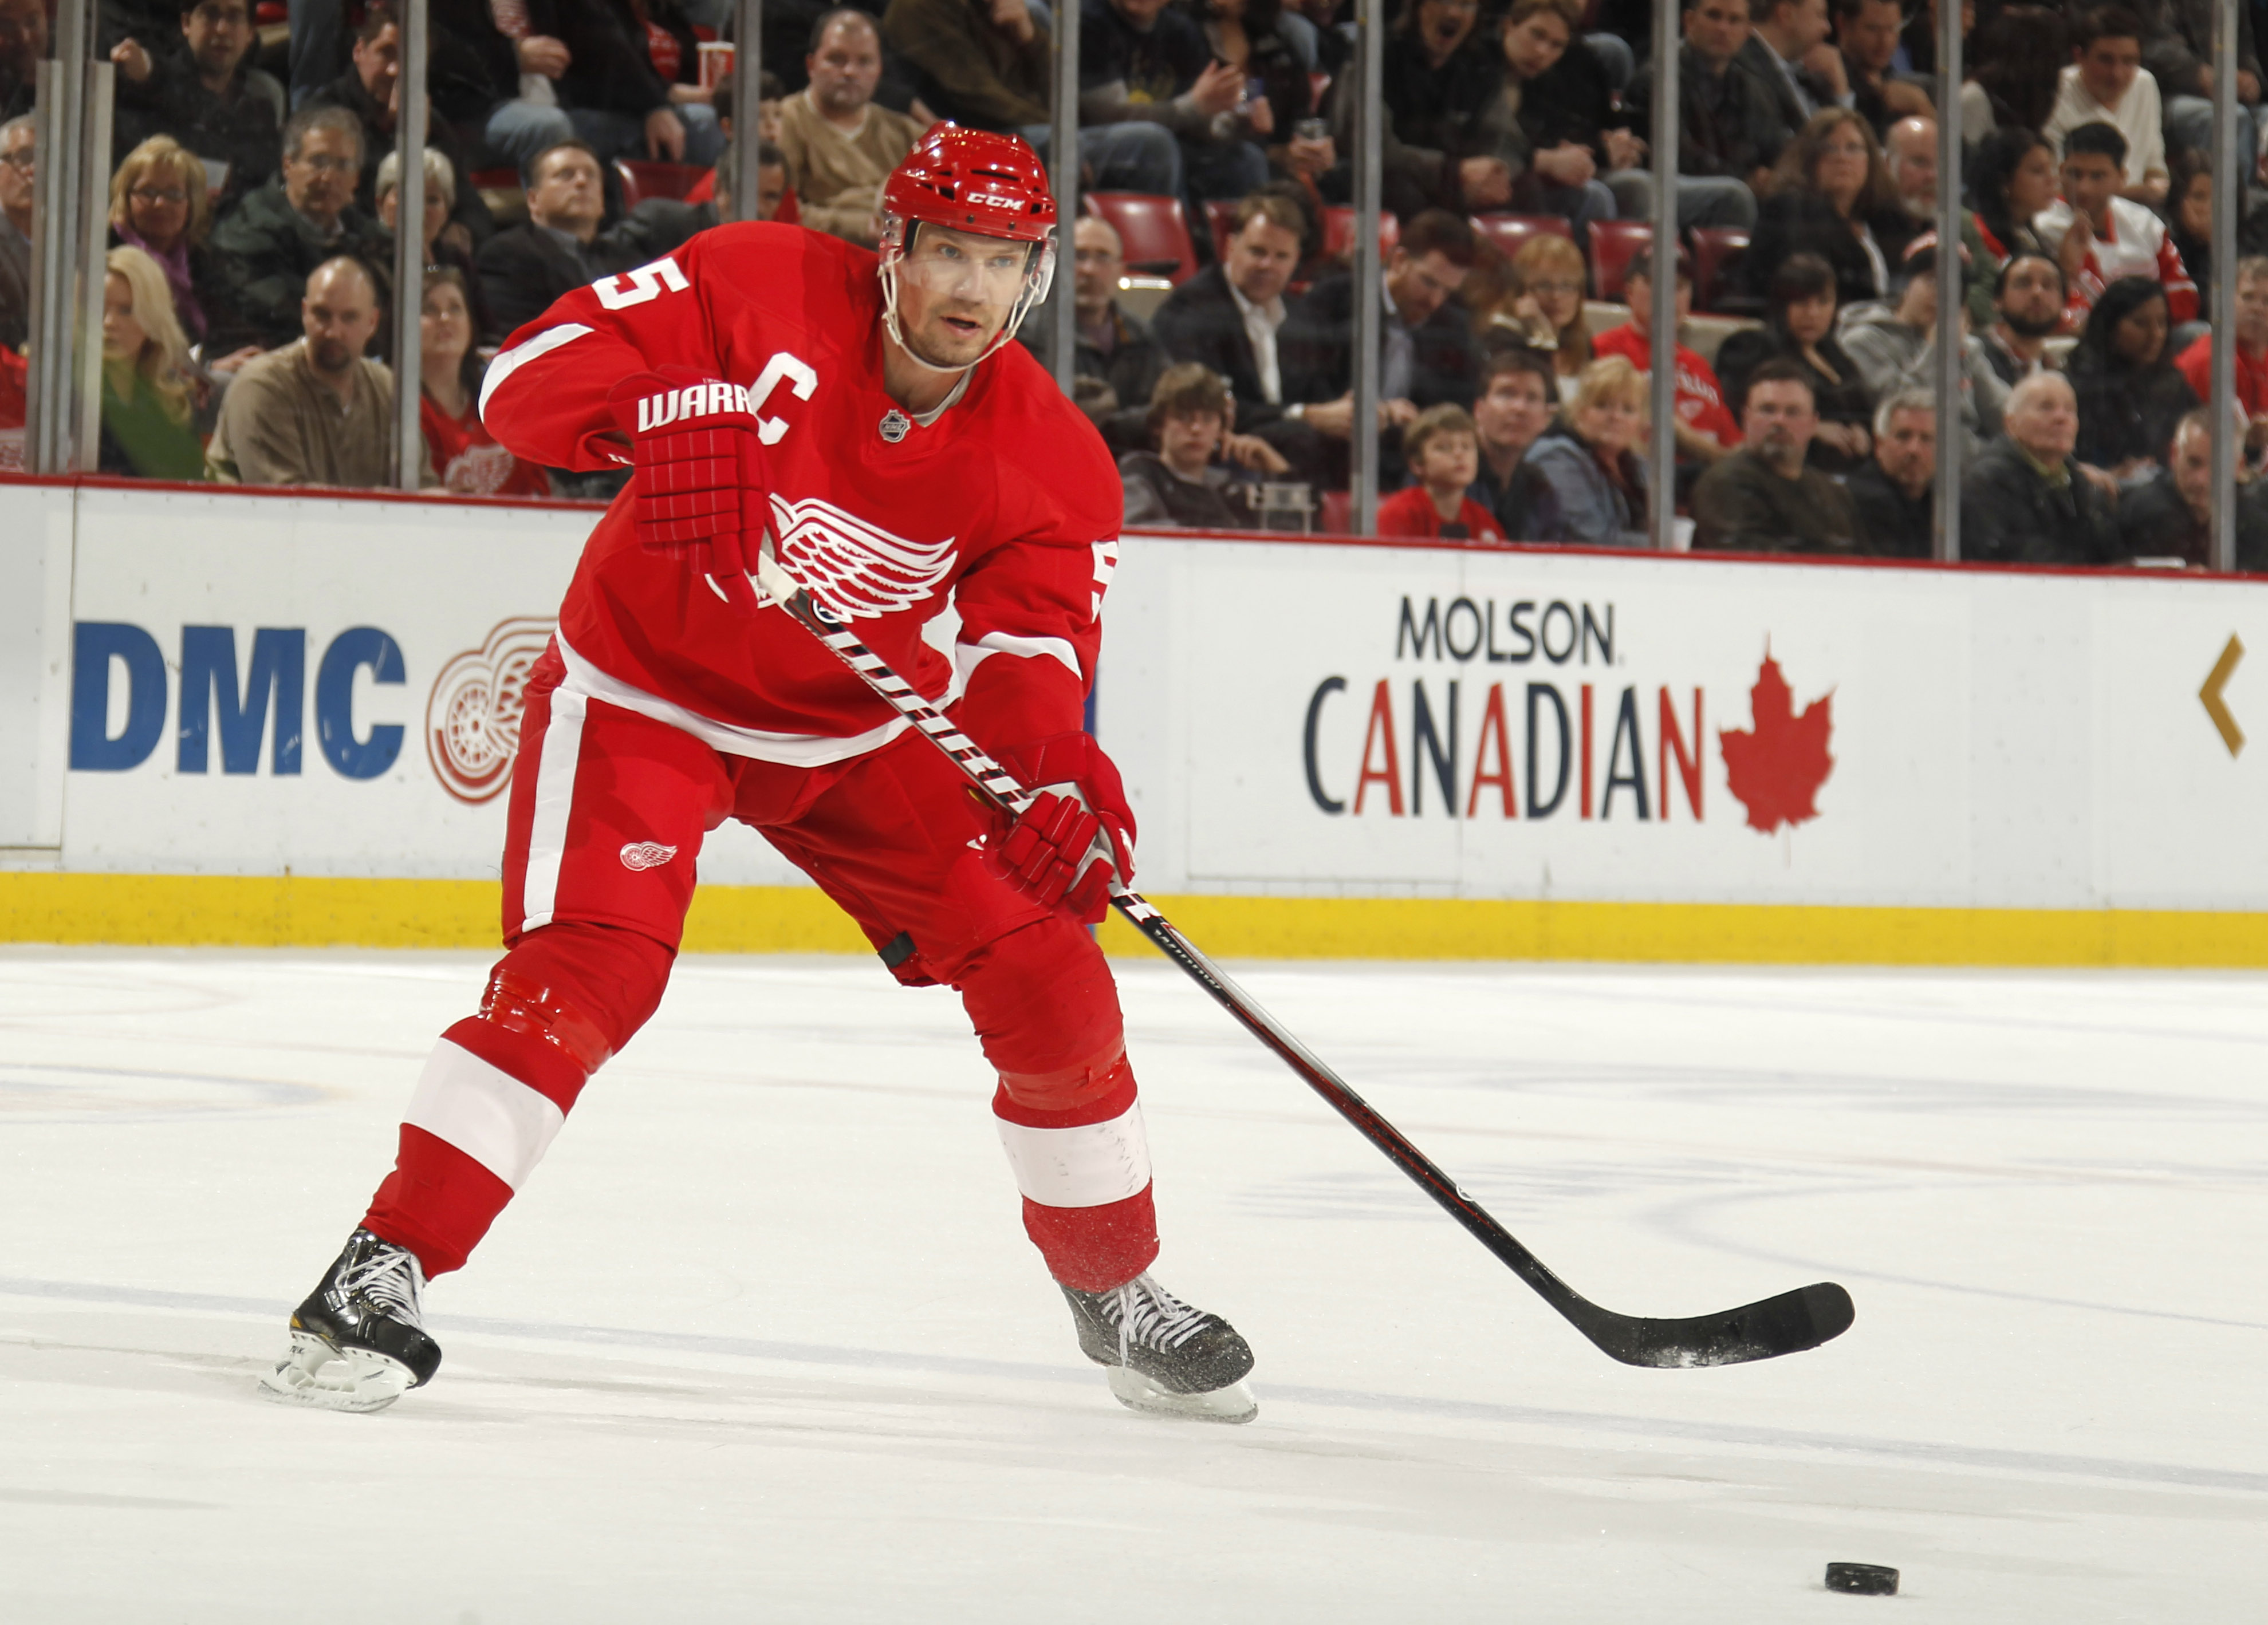 DETROIT, MI - FEBRUARY 24:  Nicklas Lidstrom #5 of the Detroit Red Wings skates with the puck while playing against the Dallas Stars on February 24, 2011 at Joe Louis Arena in Detroit, Michigan.  (Photo by Gregory Shamus/Getty Images)